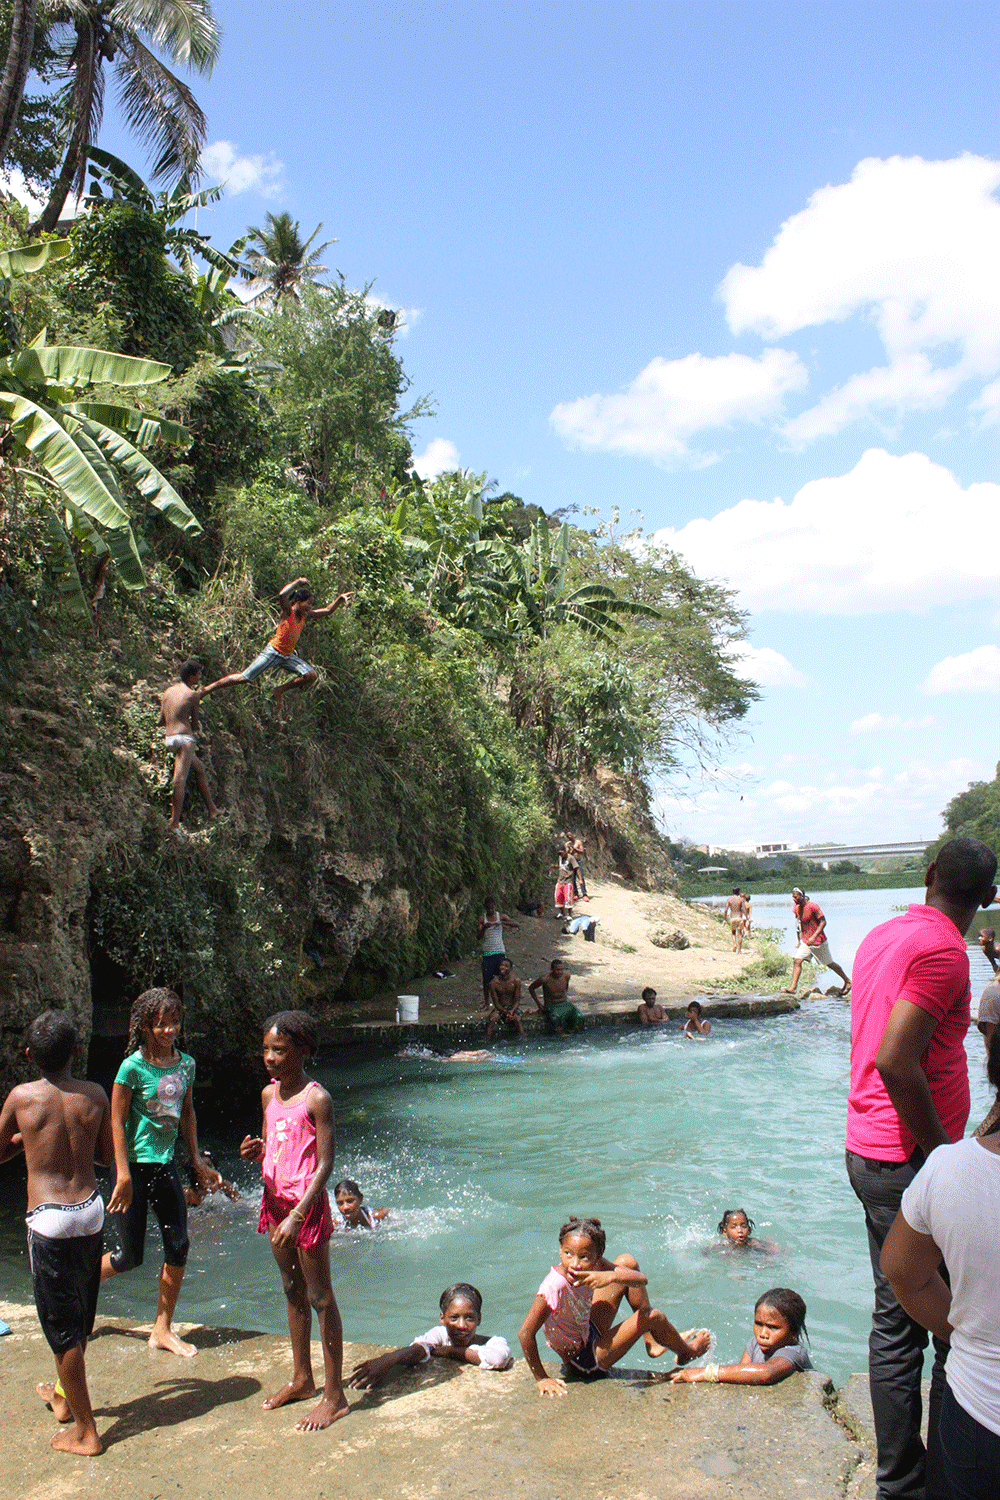 dominican republic locals swimming